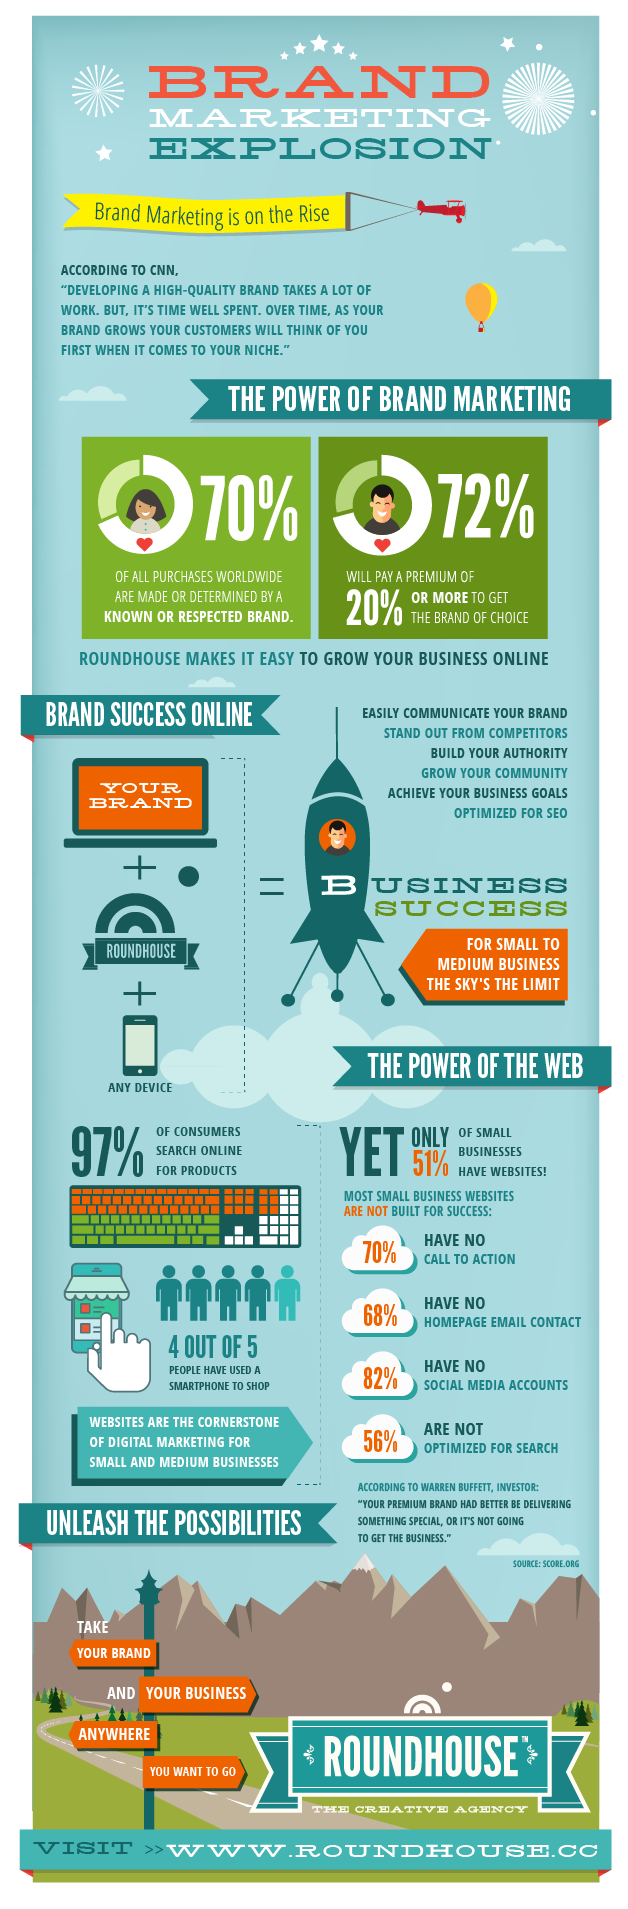 BRAND Marketing Infographic-01.png